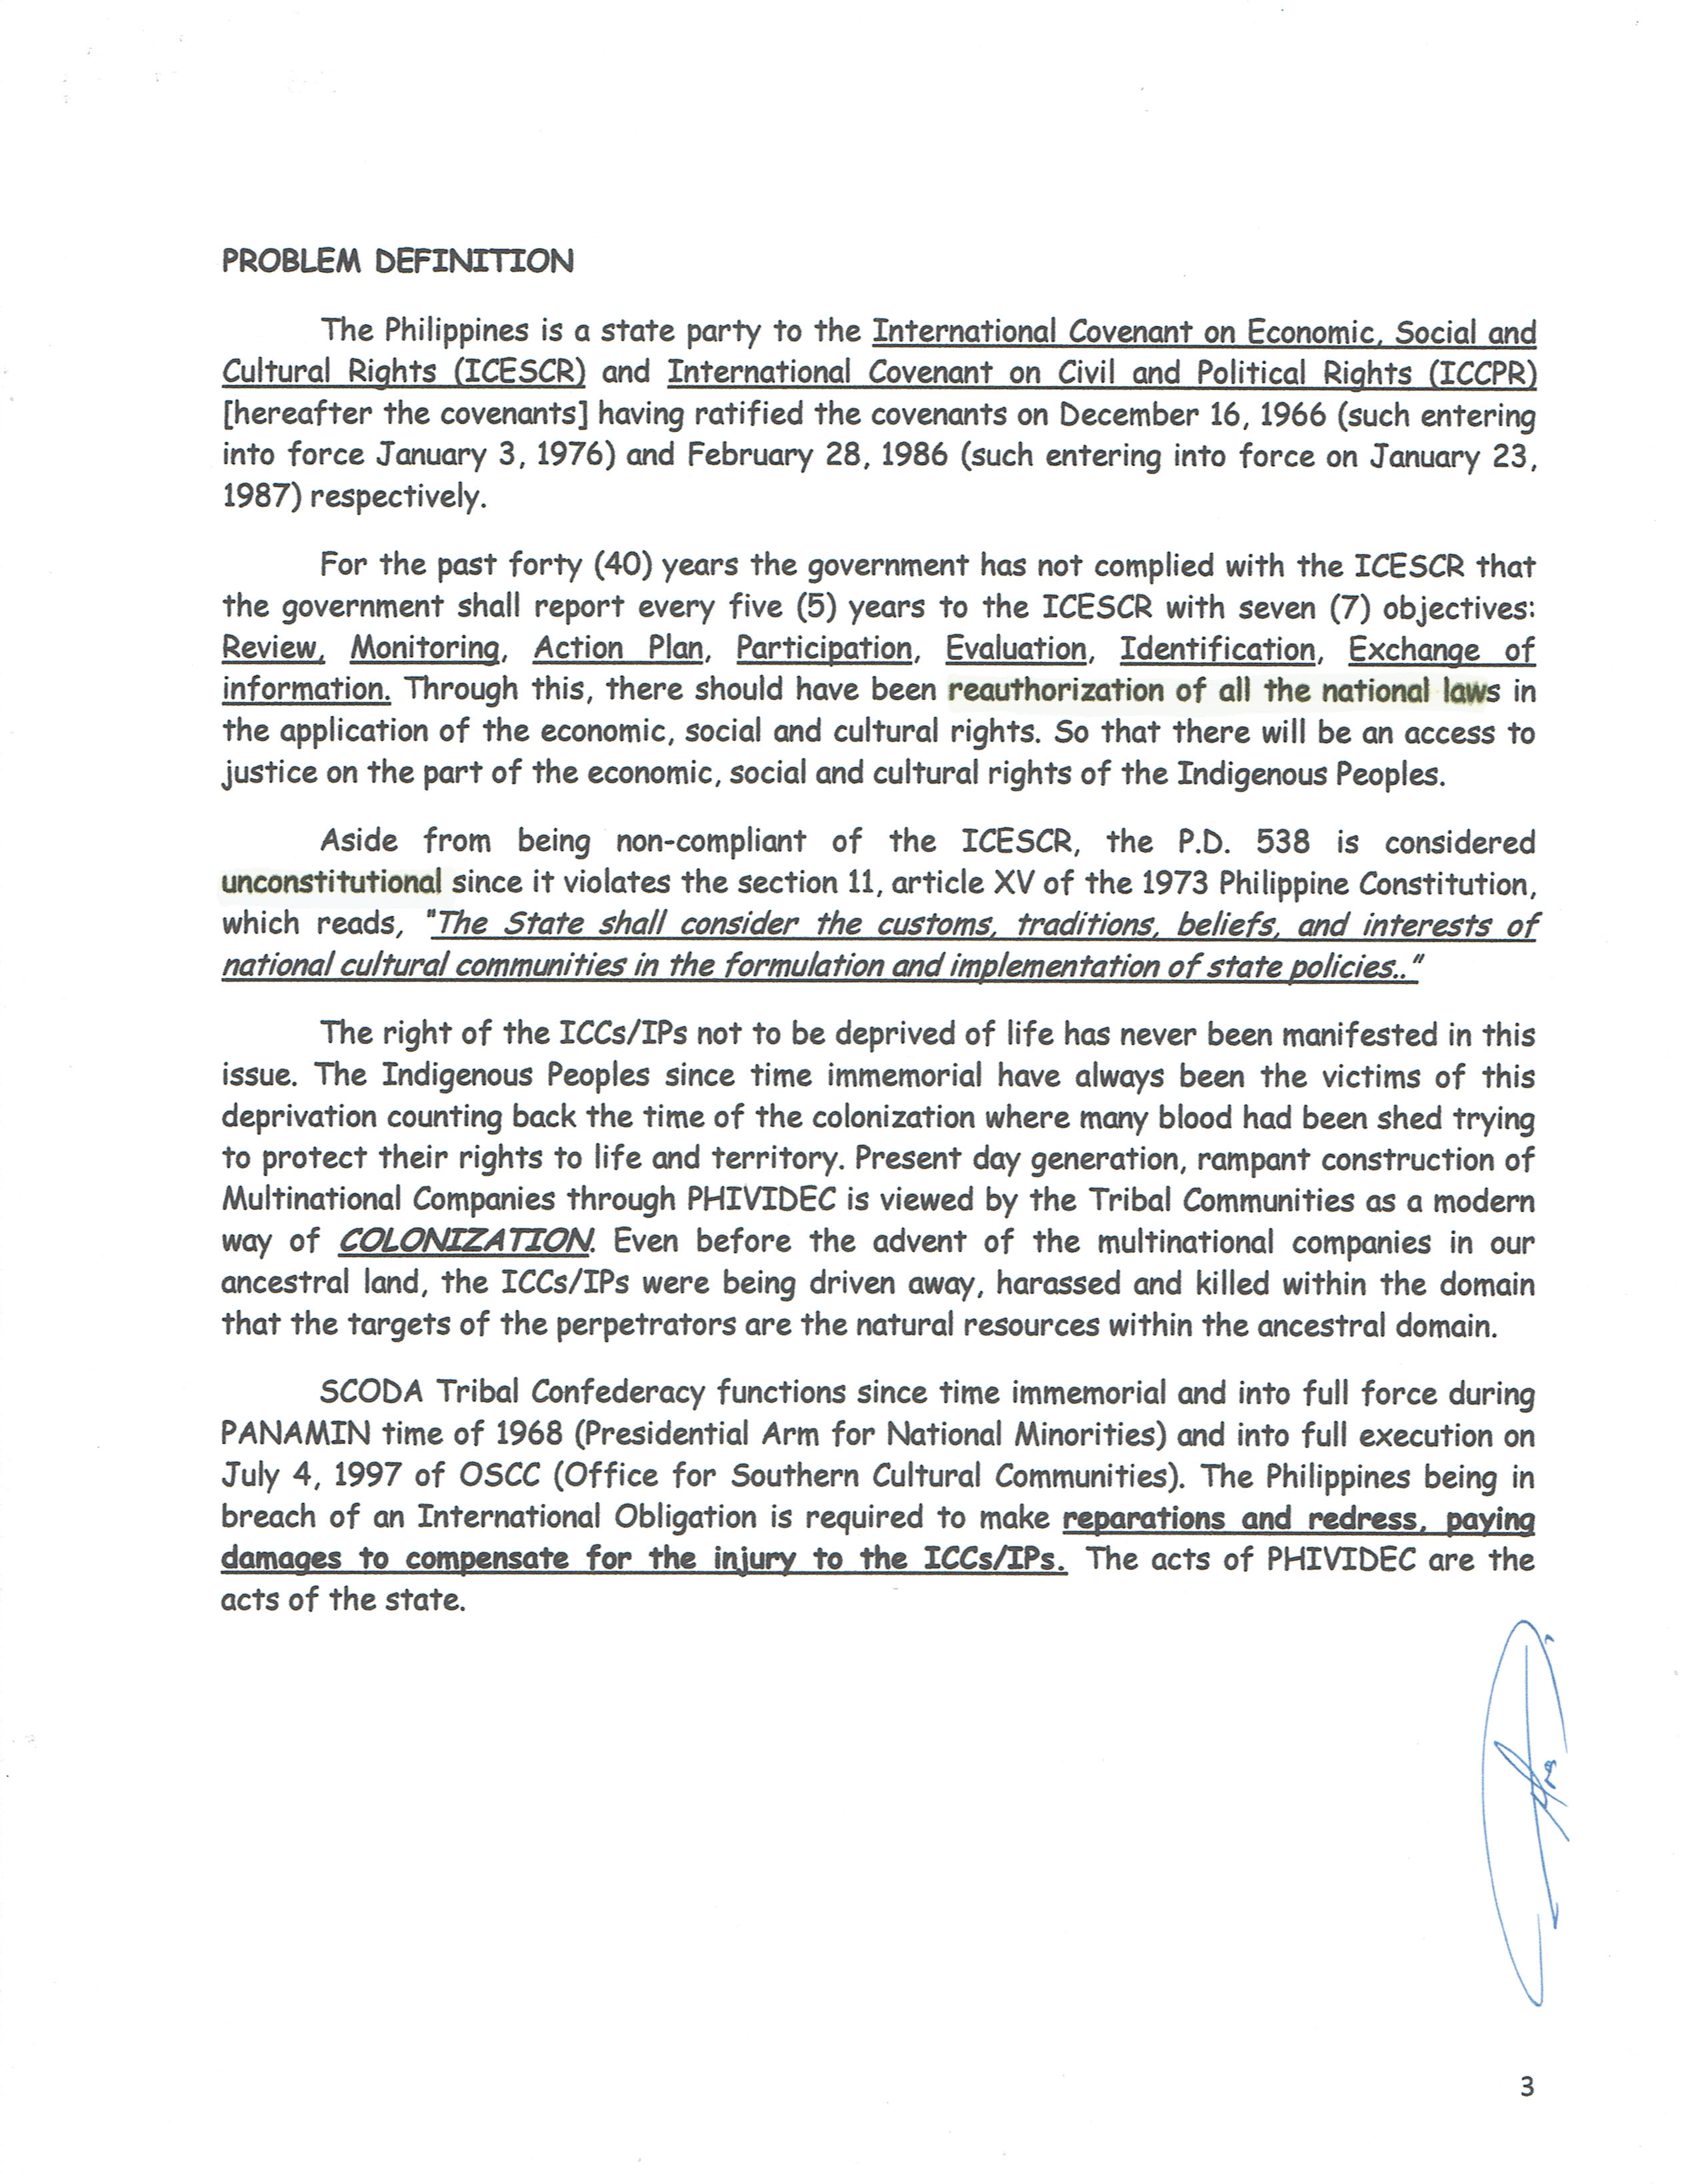 position paper on the philippine system The bill provides for the institutionalization of a tuition-free policy in all sucs  all  filipino students who meet the admission requirements for  assistance system  for tertiary education (unifast), which provides  however, in 2015, they wrote  a position paper saying that a free-tuition policy will likely.